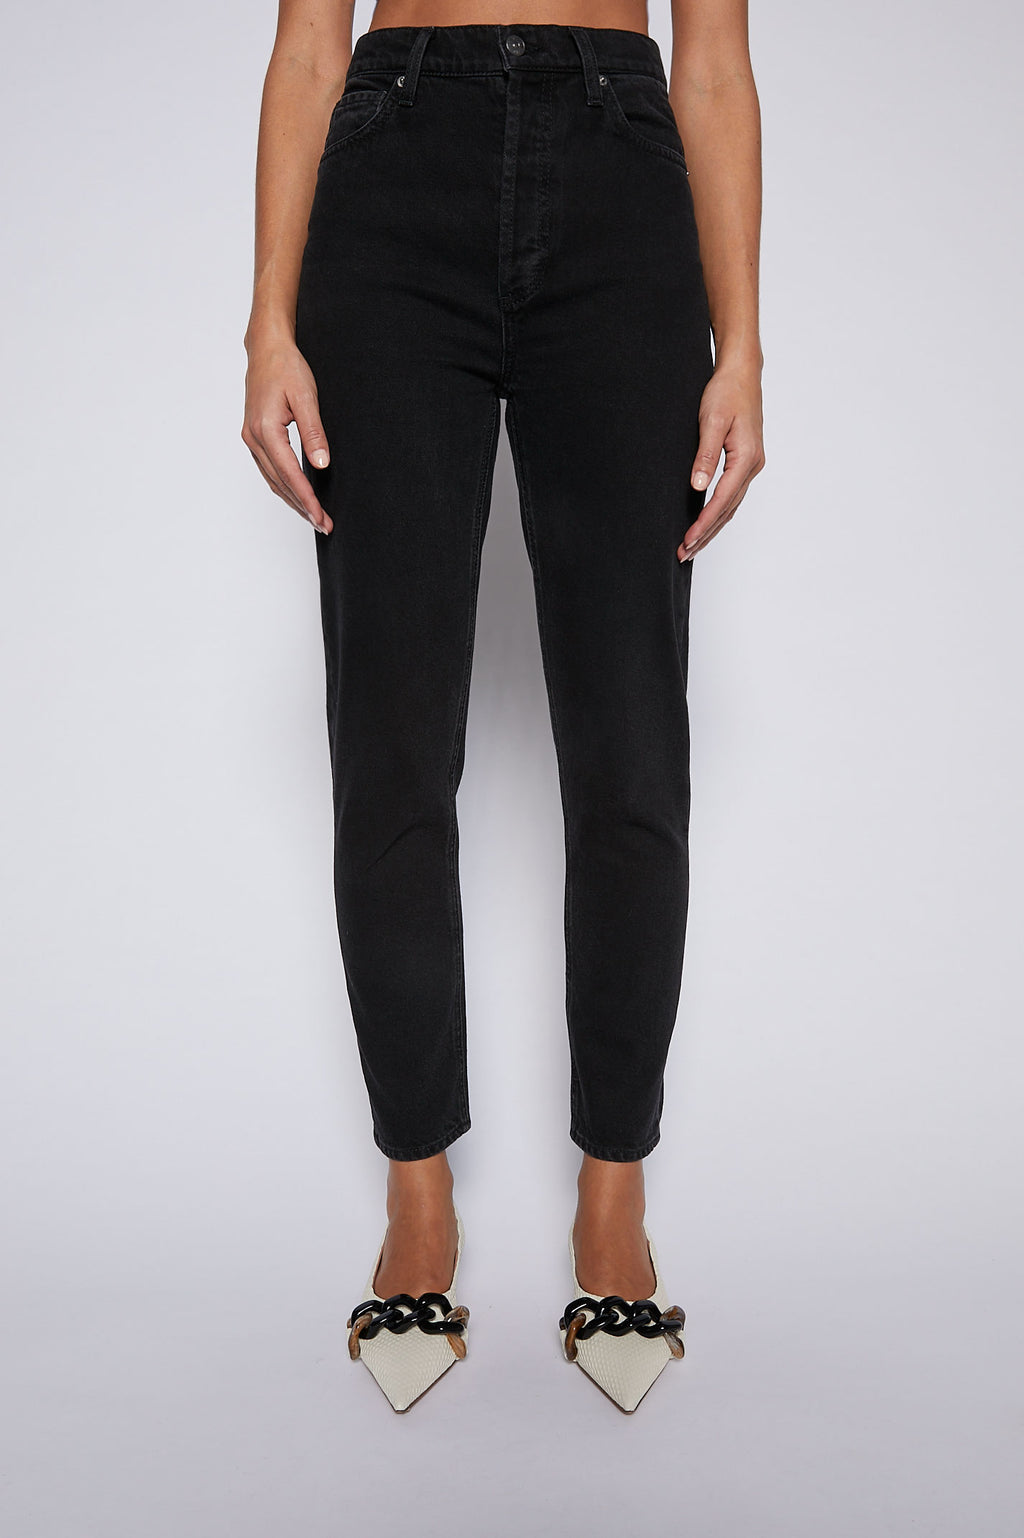 HIGH RISE STRAIGHT CROP JEAN